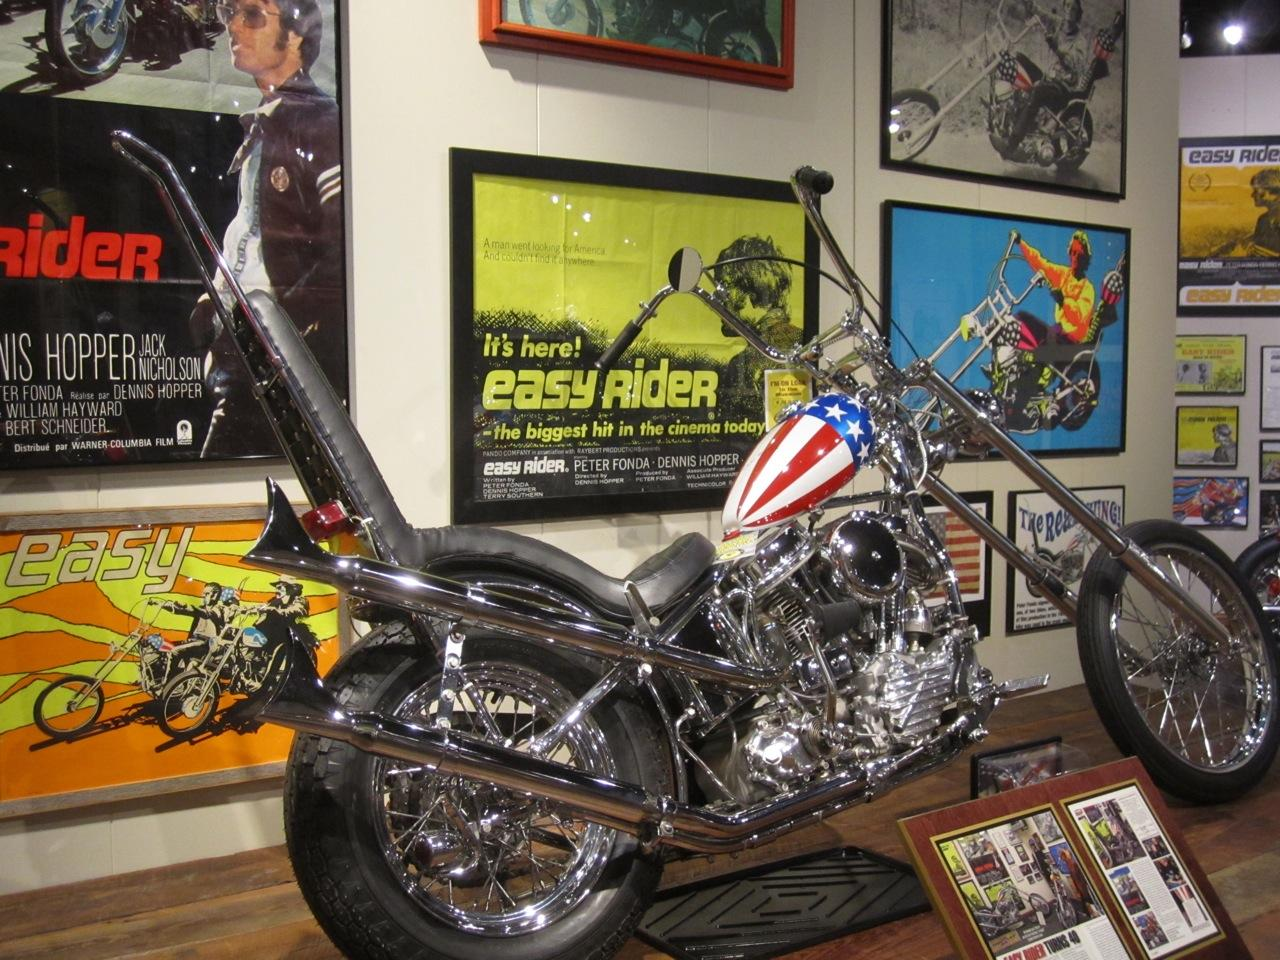 The Captain America machine has spent quite some time on display at the National Motorcycle Museum in Anamosa, Iowa and this image is courtesy of the museum.